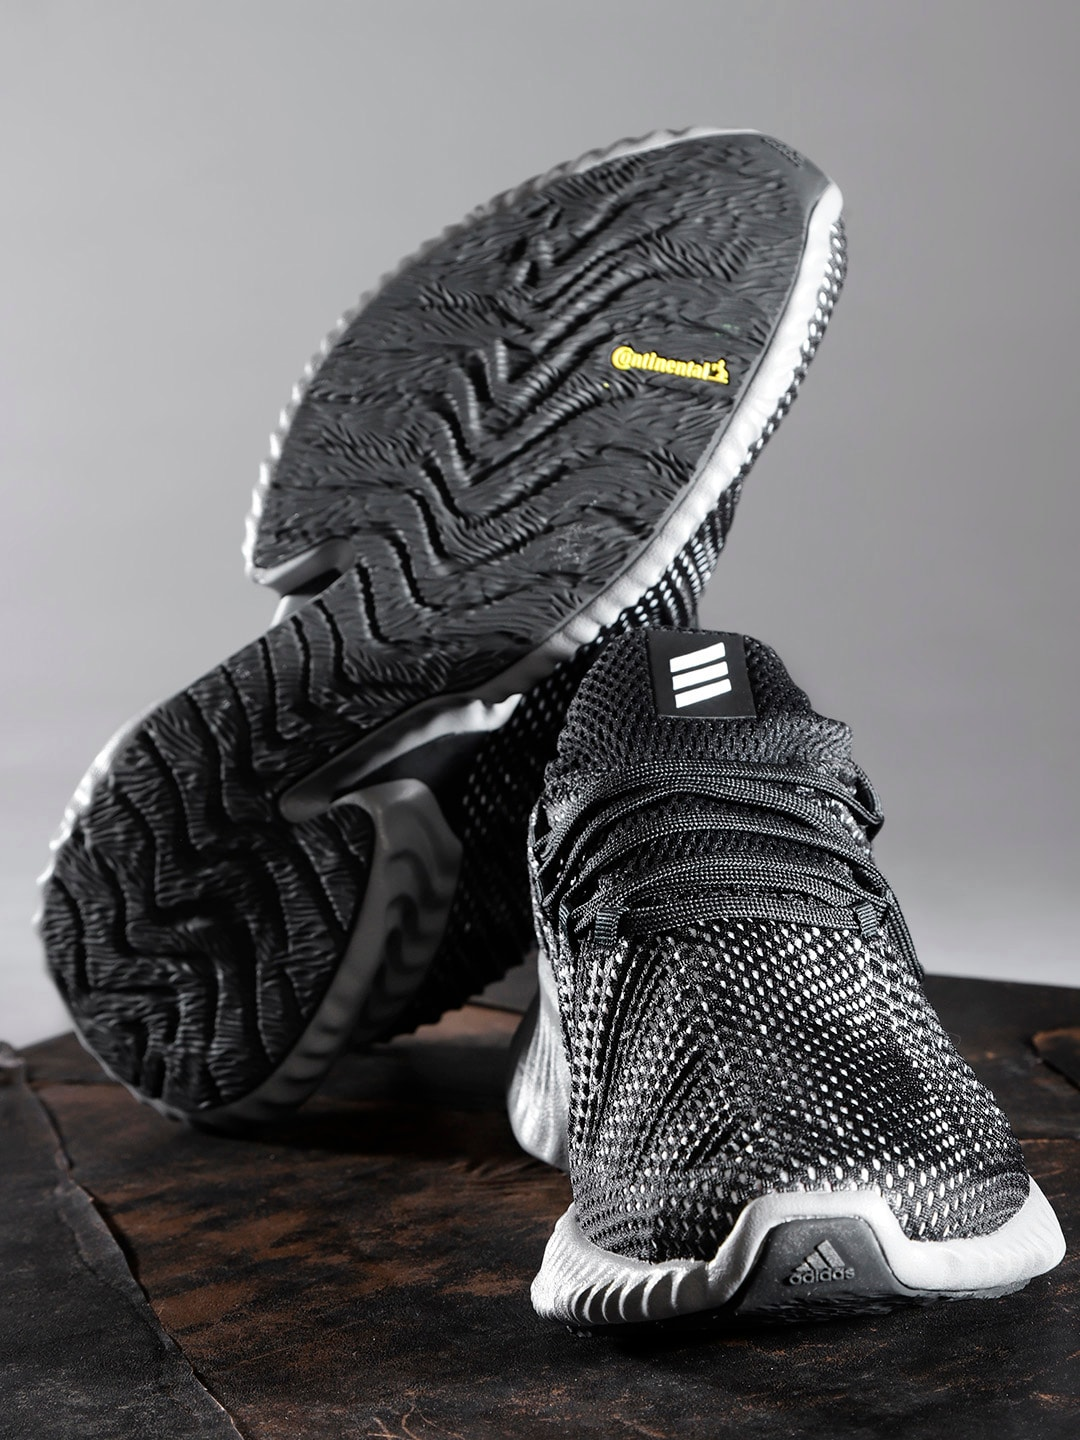 Adidas Black Shoes Men Running Instinct Alphabounce tsQBhxrdC